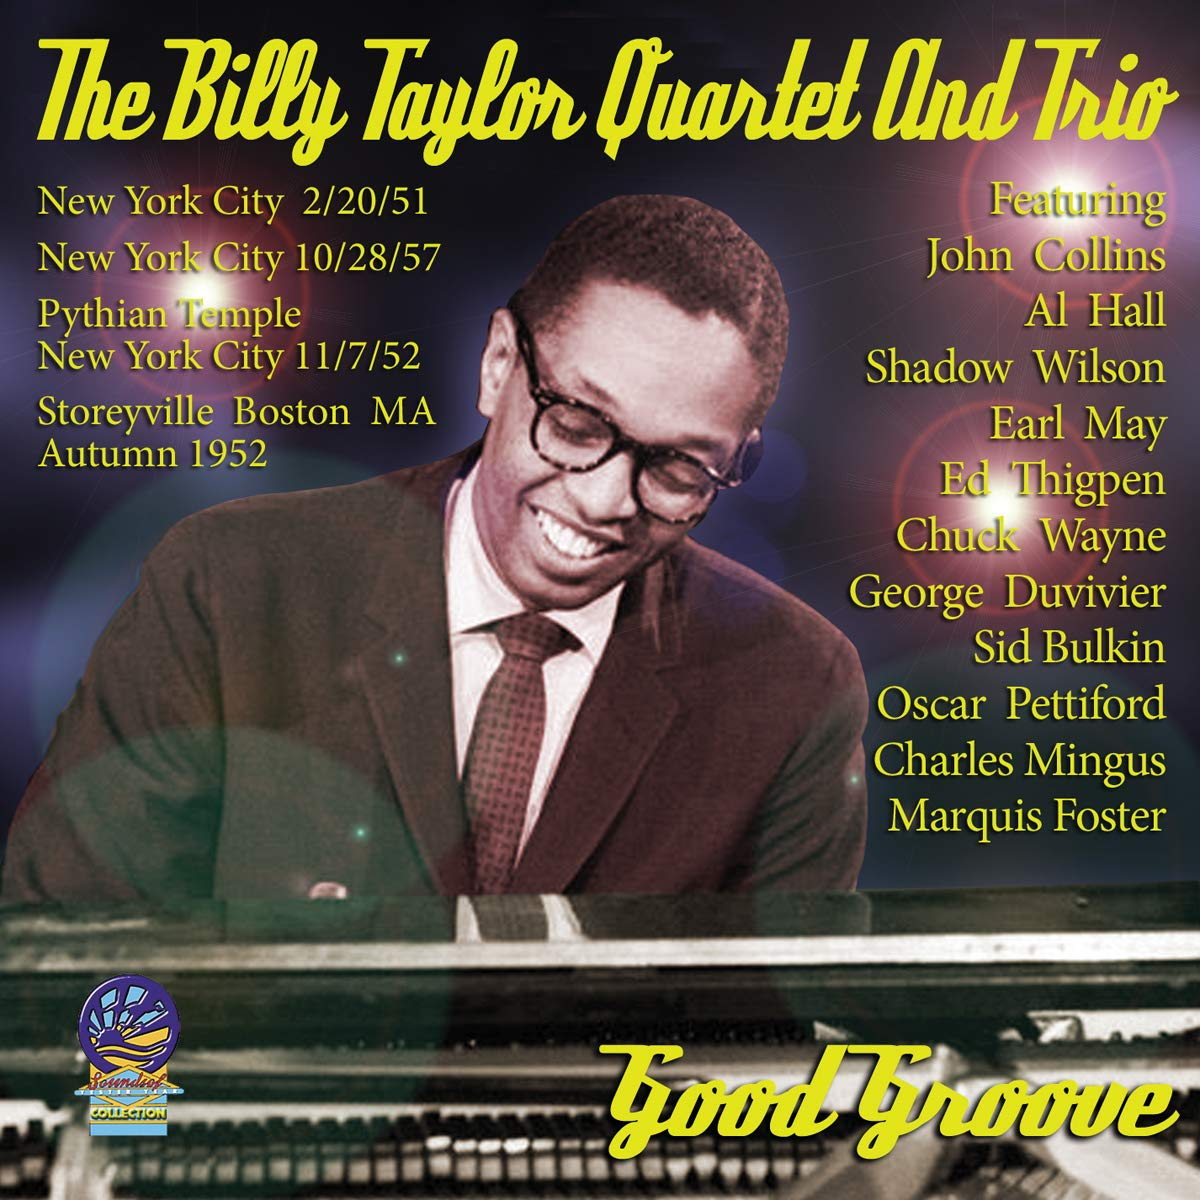 BILLY TAYLOR - Billy Taylor Quartet And Trio : Good Groove cover